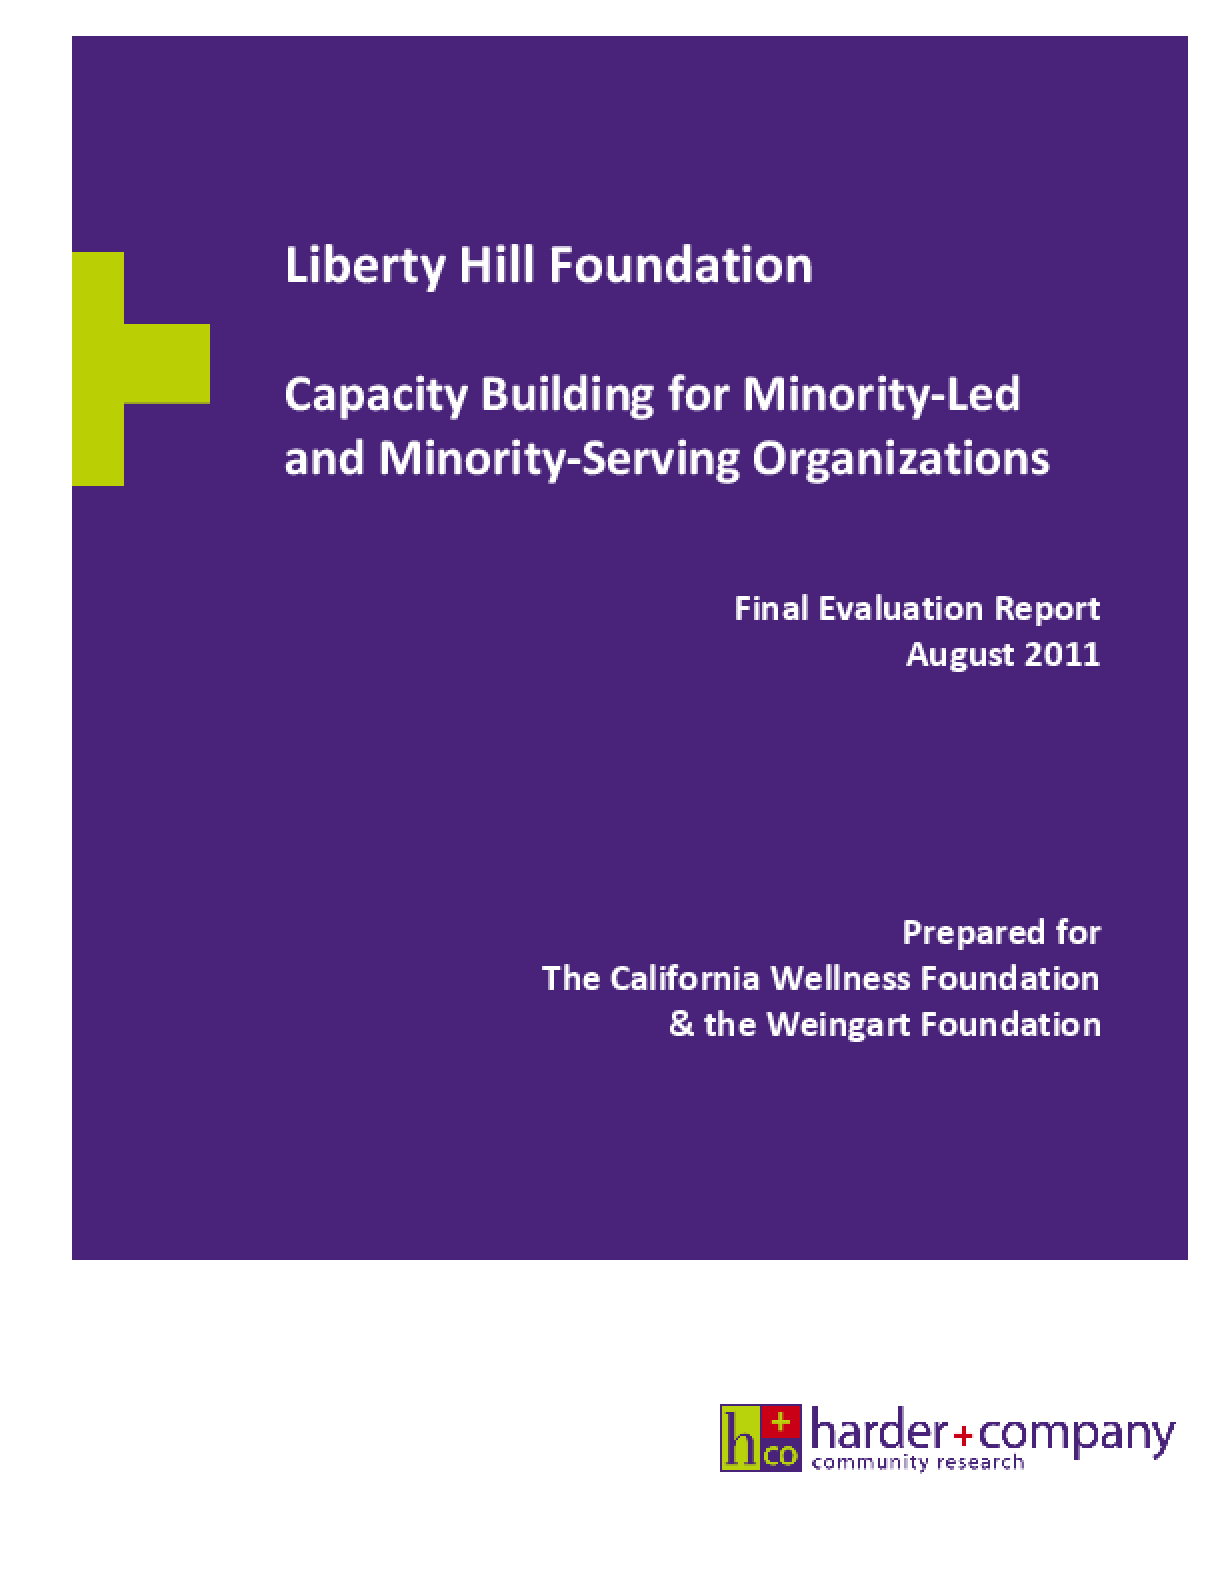 Liberty Hill Foundation: Capacity Building for Minority-Led and Minority-Serving Organizations